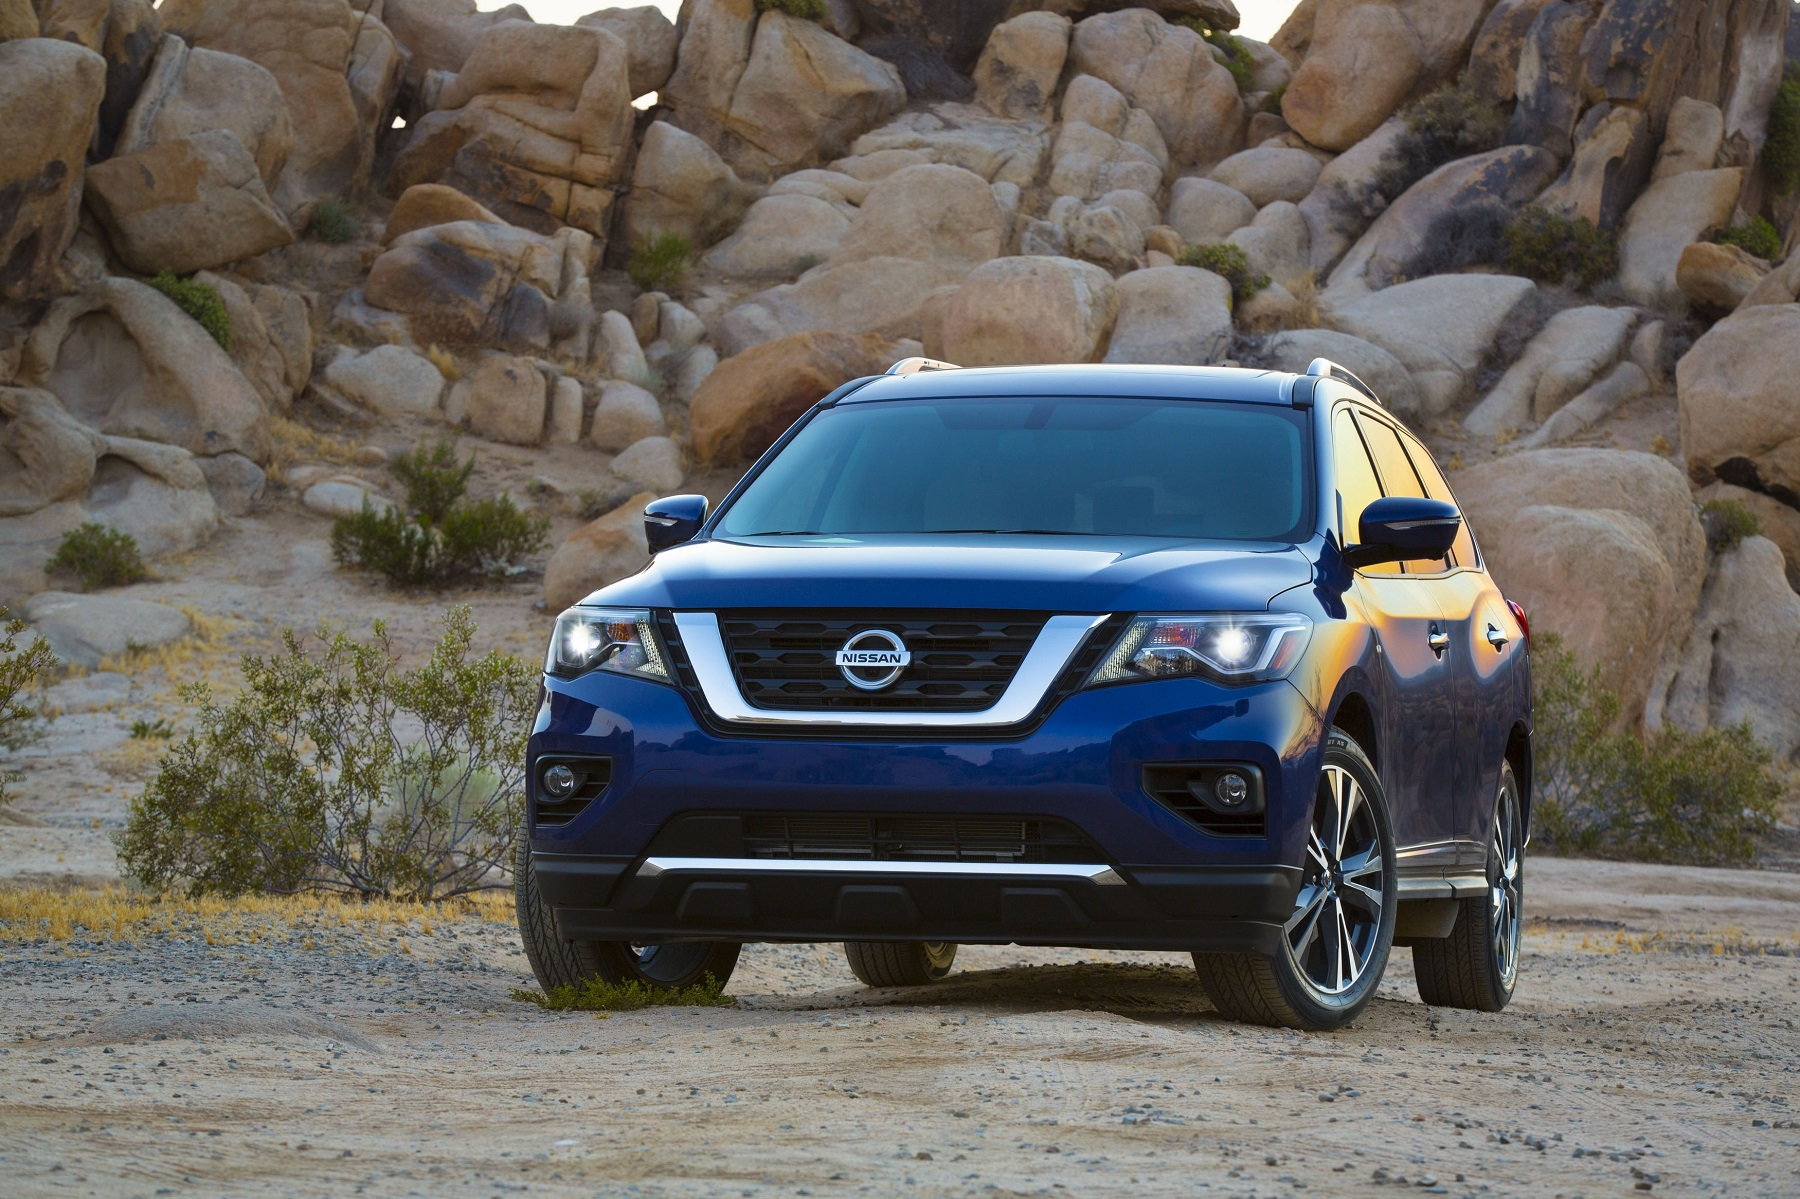 According To Those In The Know At Nissan Pathfinder S Core Demographic Young Moms Dictated New Brawnier Look For